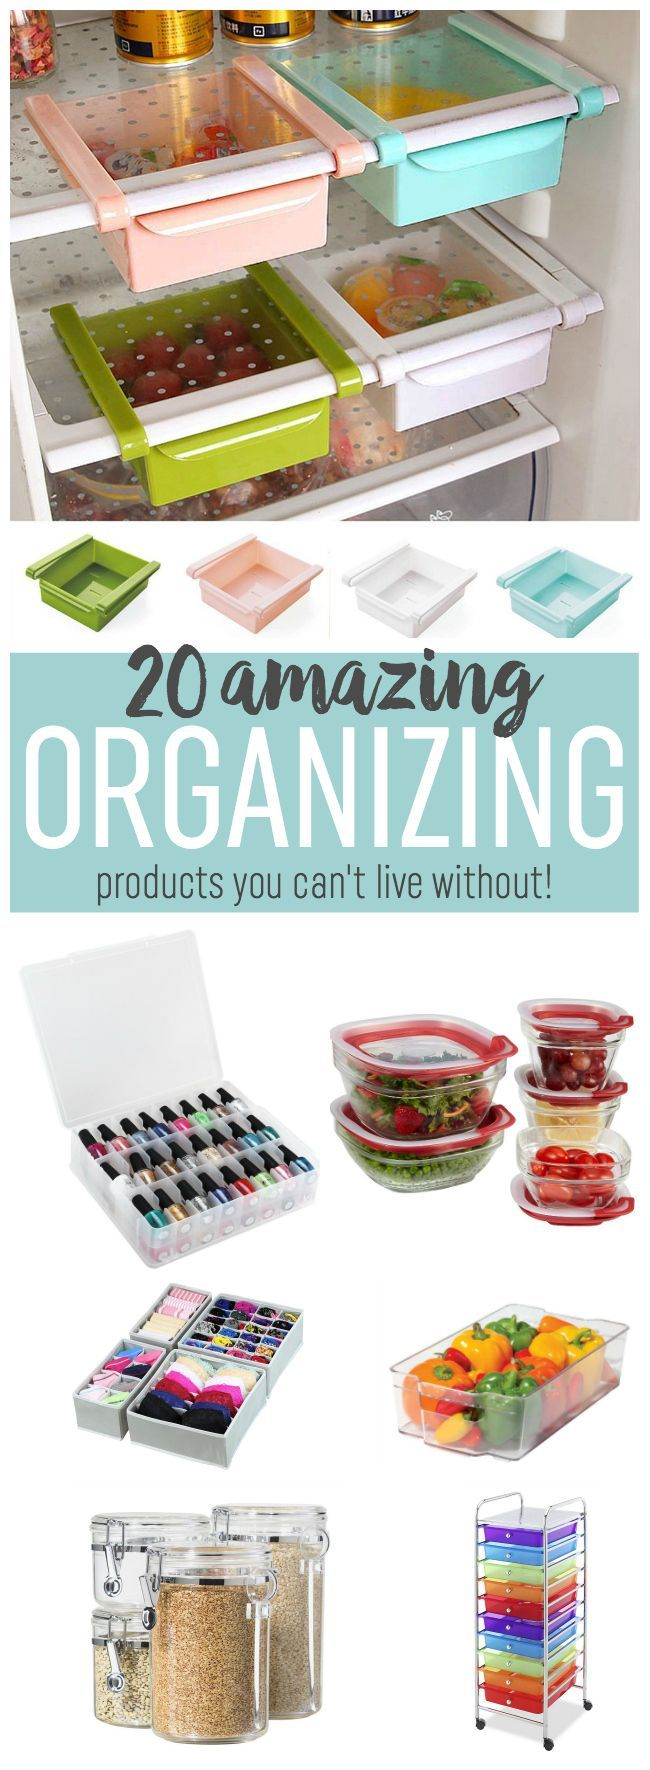 Check out our list of the best organizing products to keep your kitchen, office and toy room clean and organized in the new year and beyond.